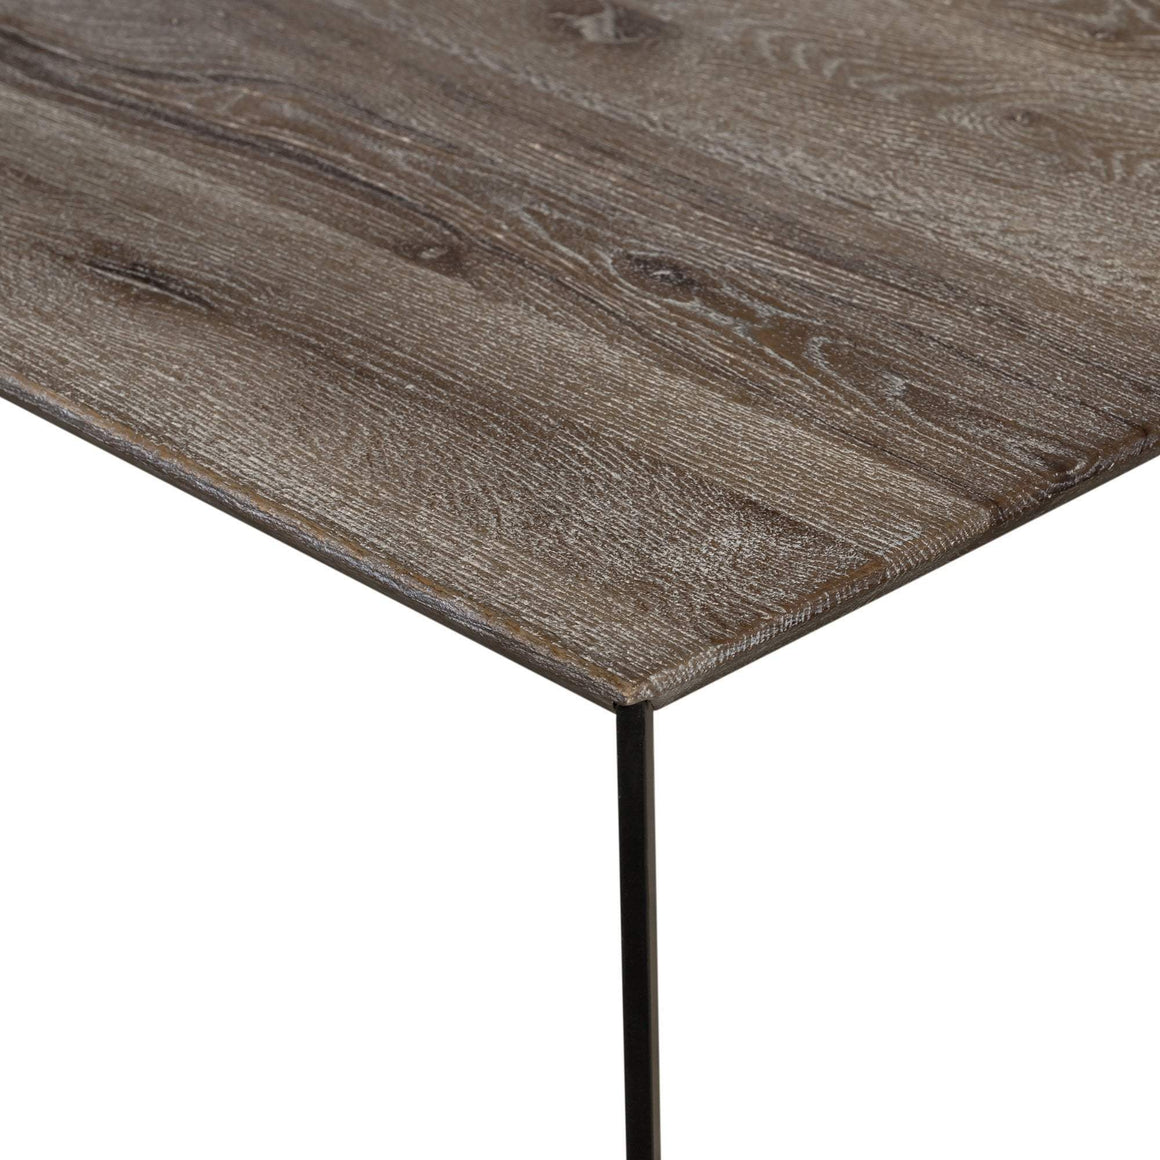 RUSTIC OAK DINING TABLE SQUARE 2.4M